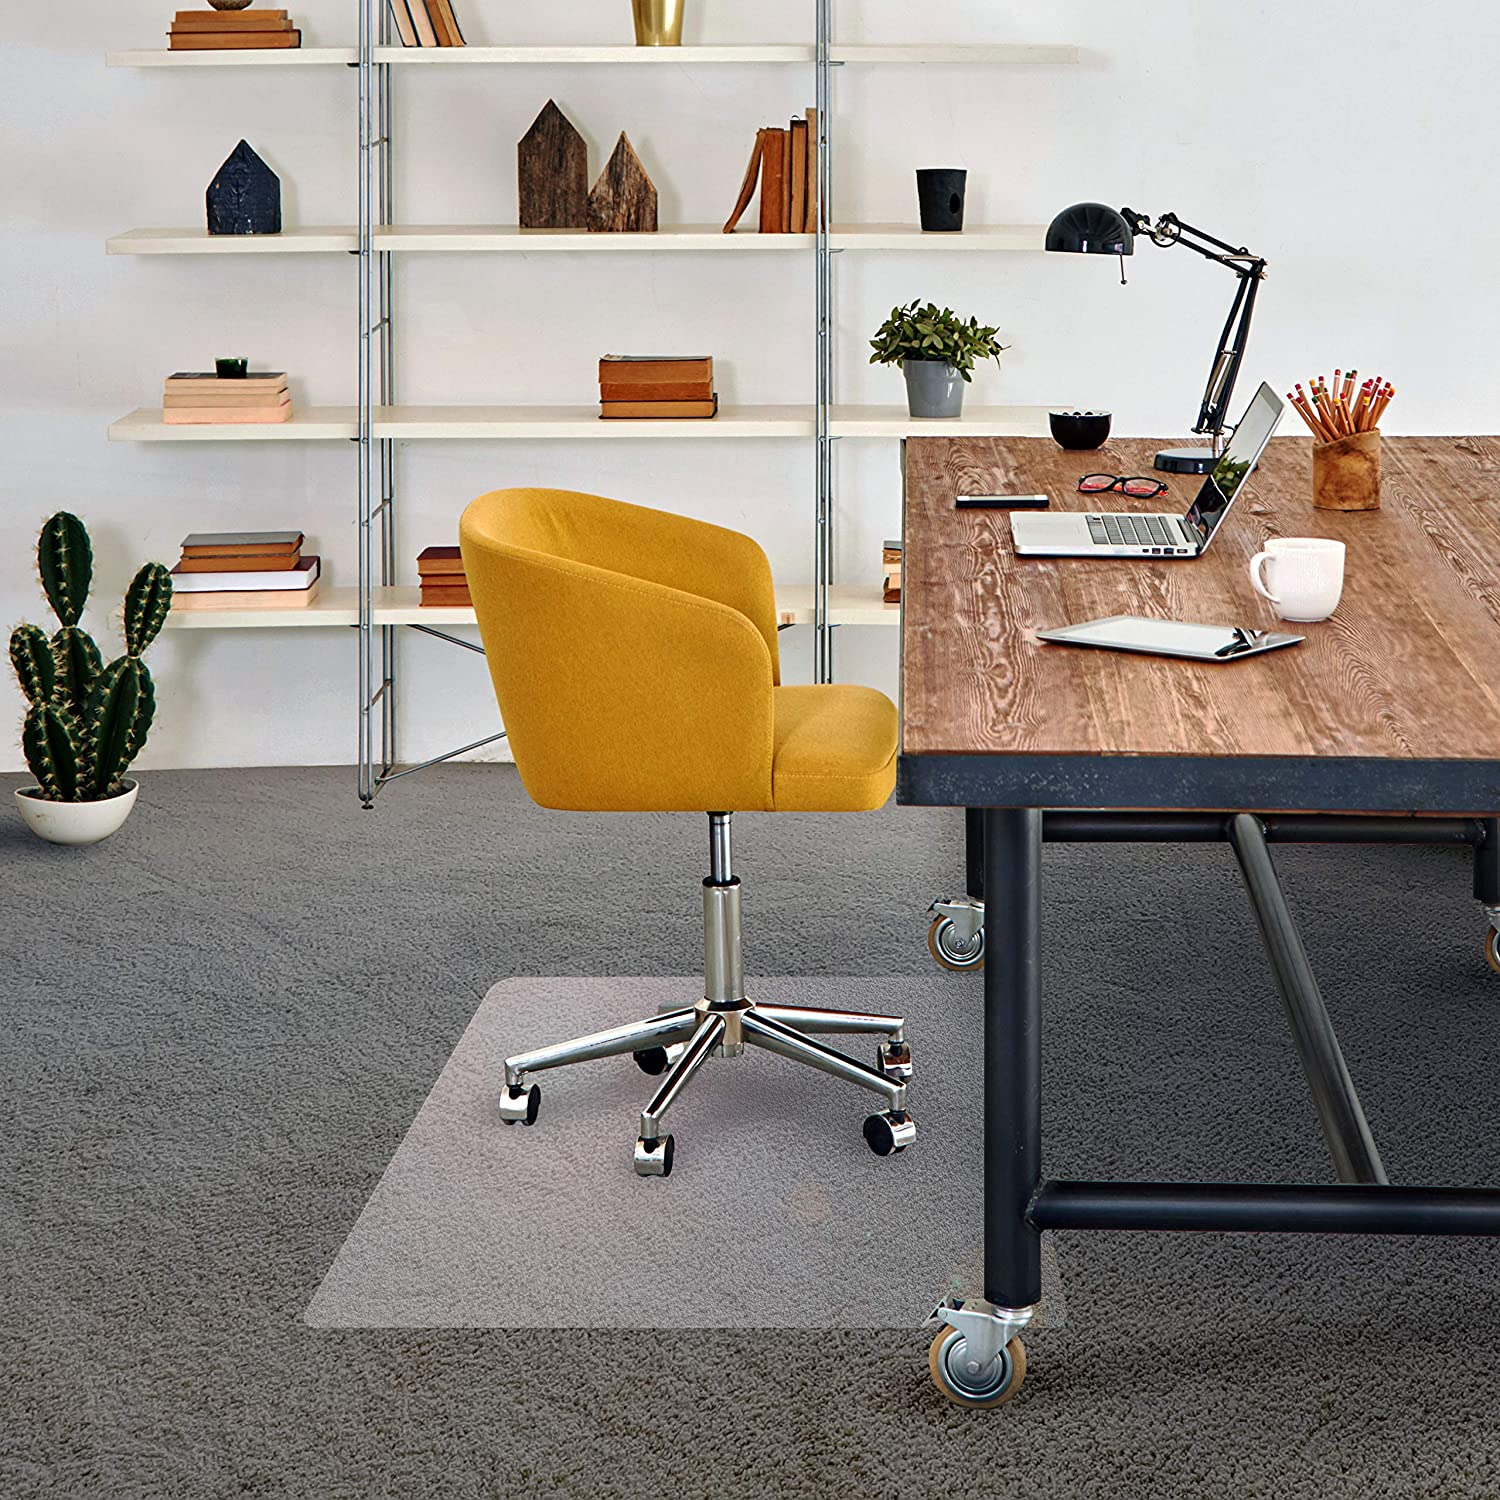 Amazon Com Floortex Basic Chair Mat 48 X 60 For Low Pile Carpets Office Desk Pads And Blotters Office Products